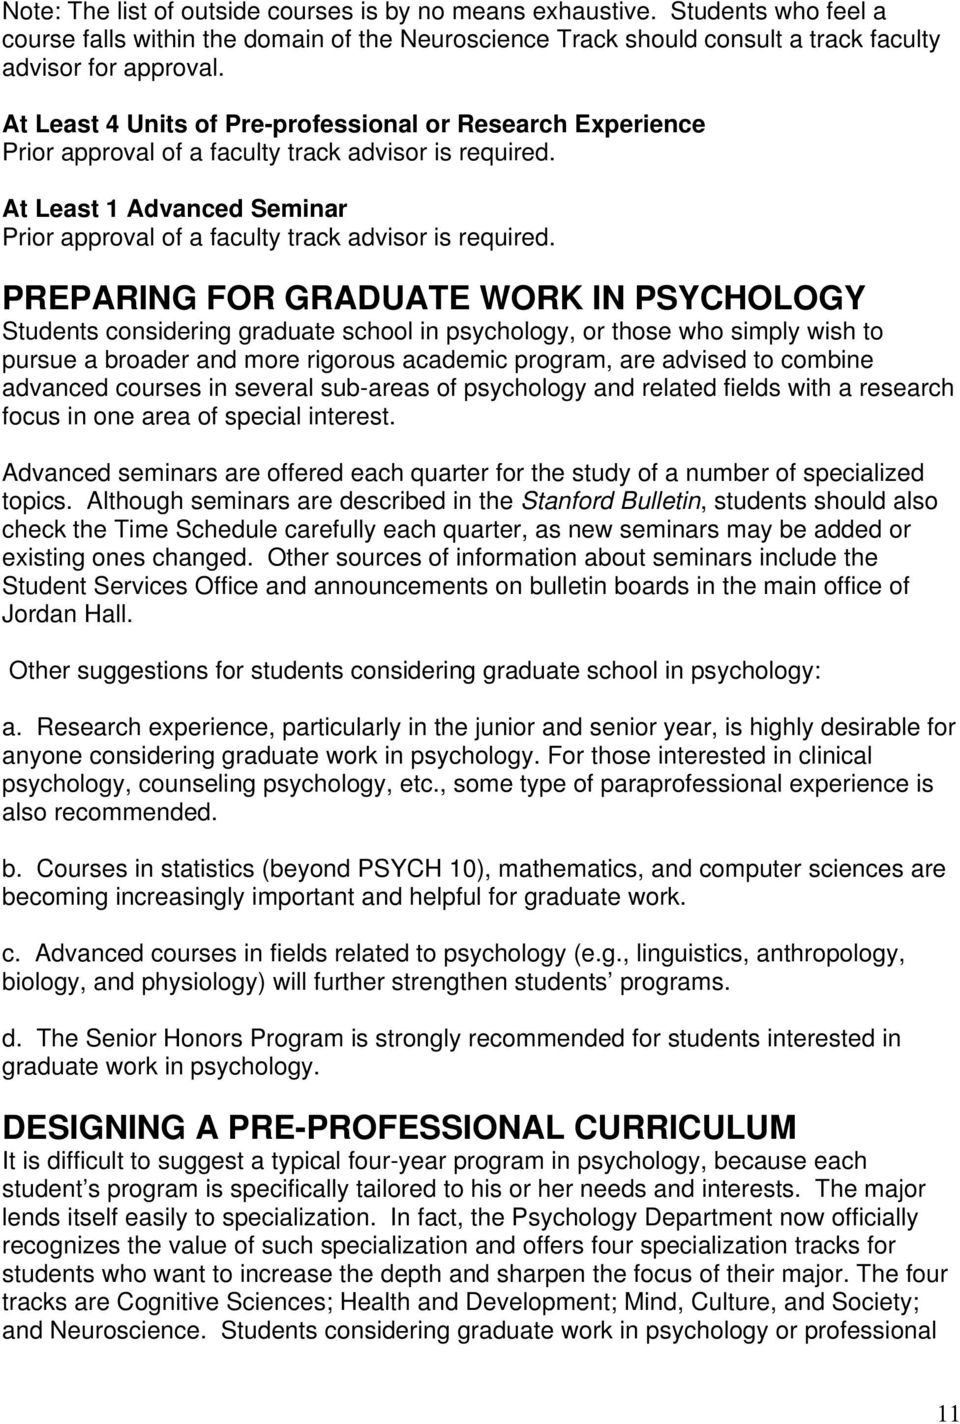 PREPARING FOR GRADUATE WORK IN PSYCHOLOGY Students considering graduate school in psychology, or those who simply wish to pursue a broader and more rigorous academic program, are advised to combine